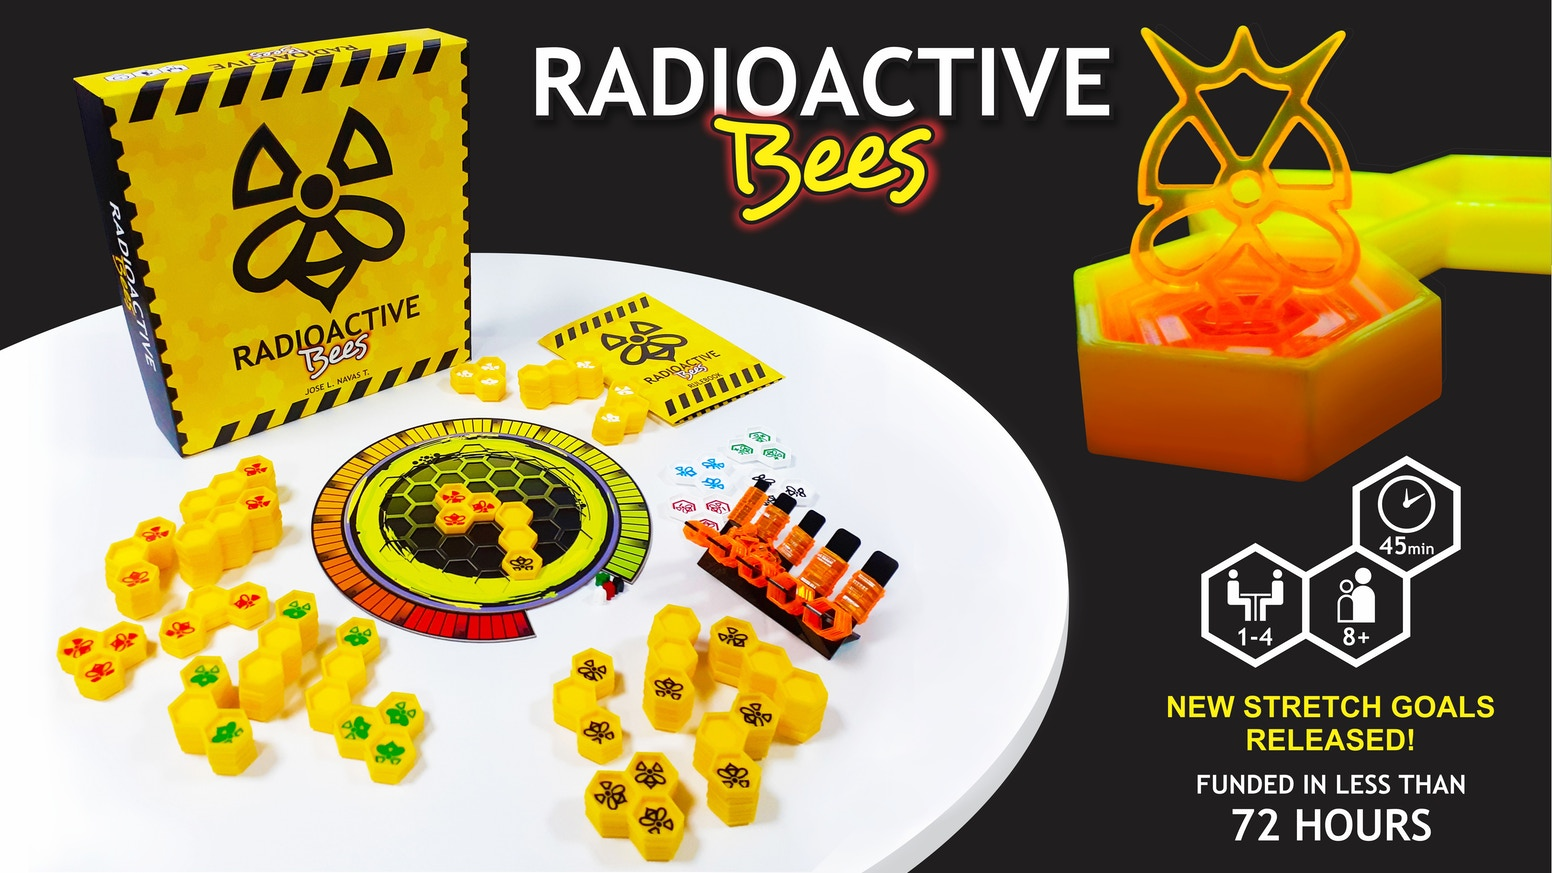 An innovative tile-stacking game in which mutant bees build 3D radioactive honeycombs